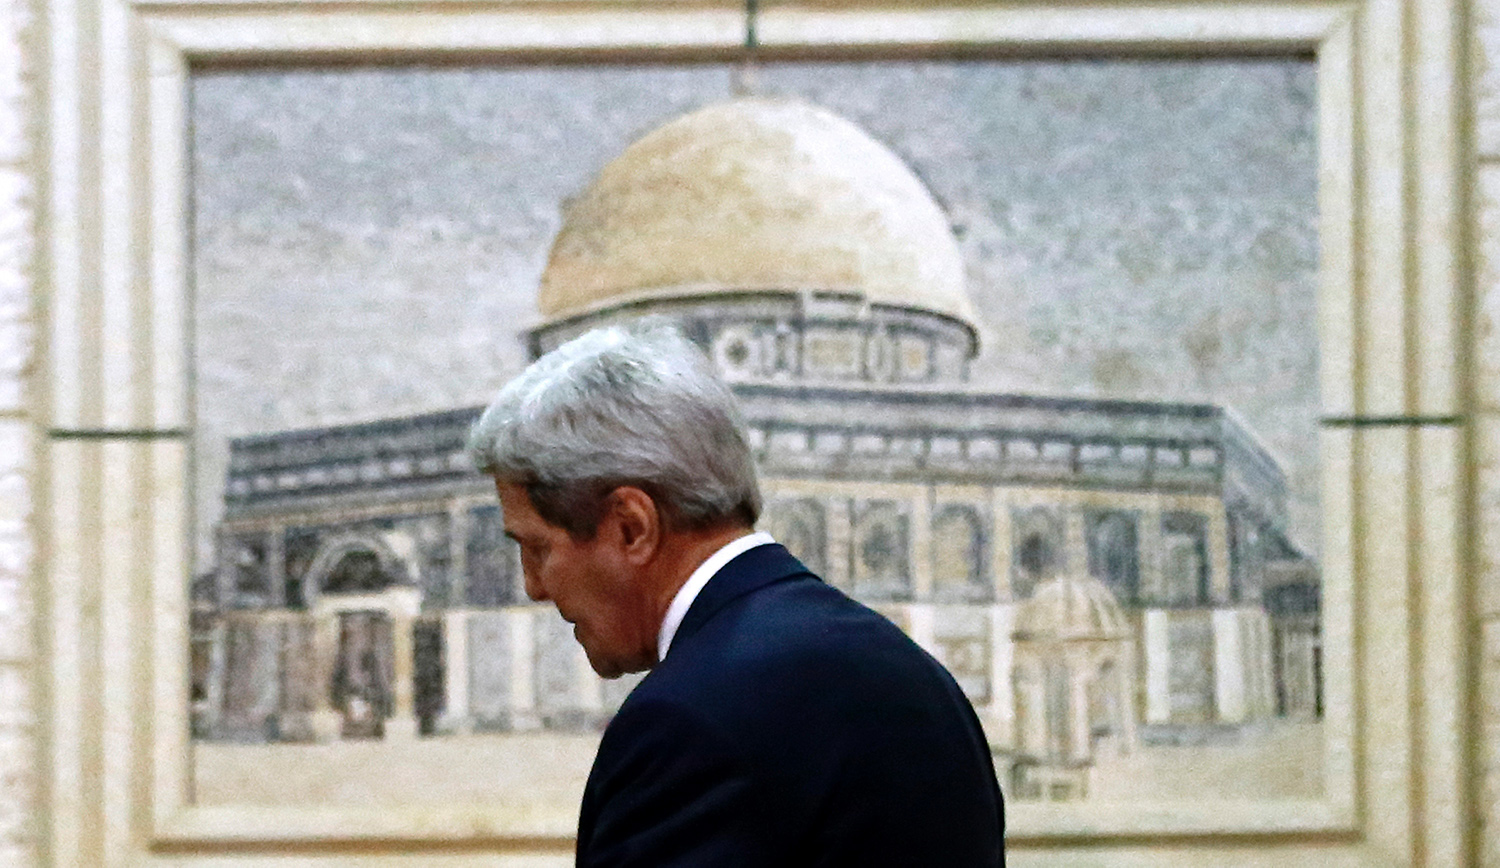 John Kerry, America's secretary of state at the time, arrives at Palestinian Authority headquarters in the West Bank city of Ramallah on November 24, 2015. ABBAS MOMANI/AFP via Getty Images.